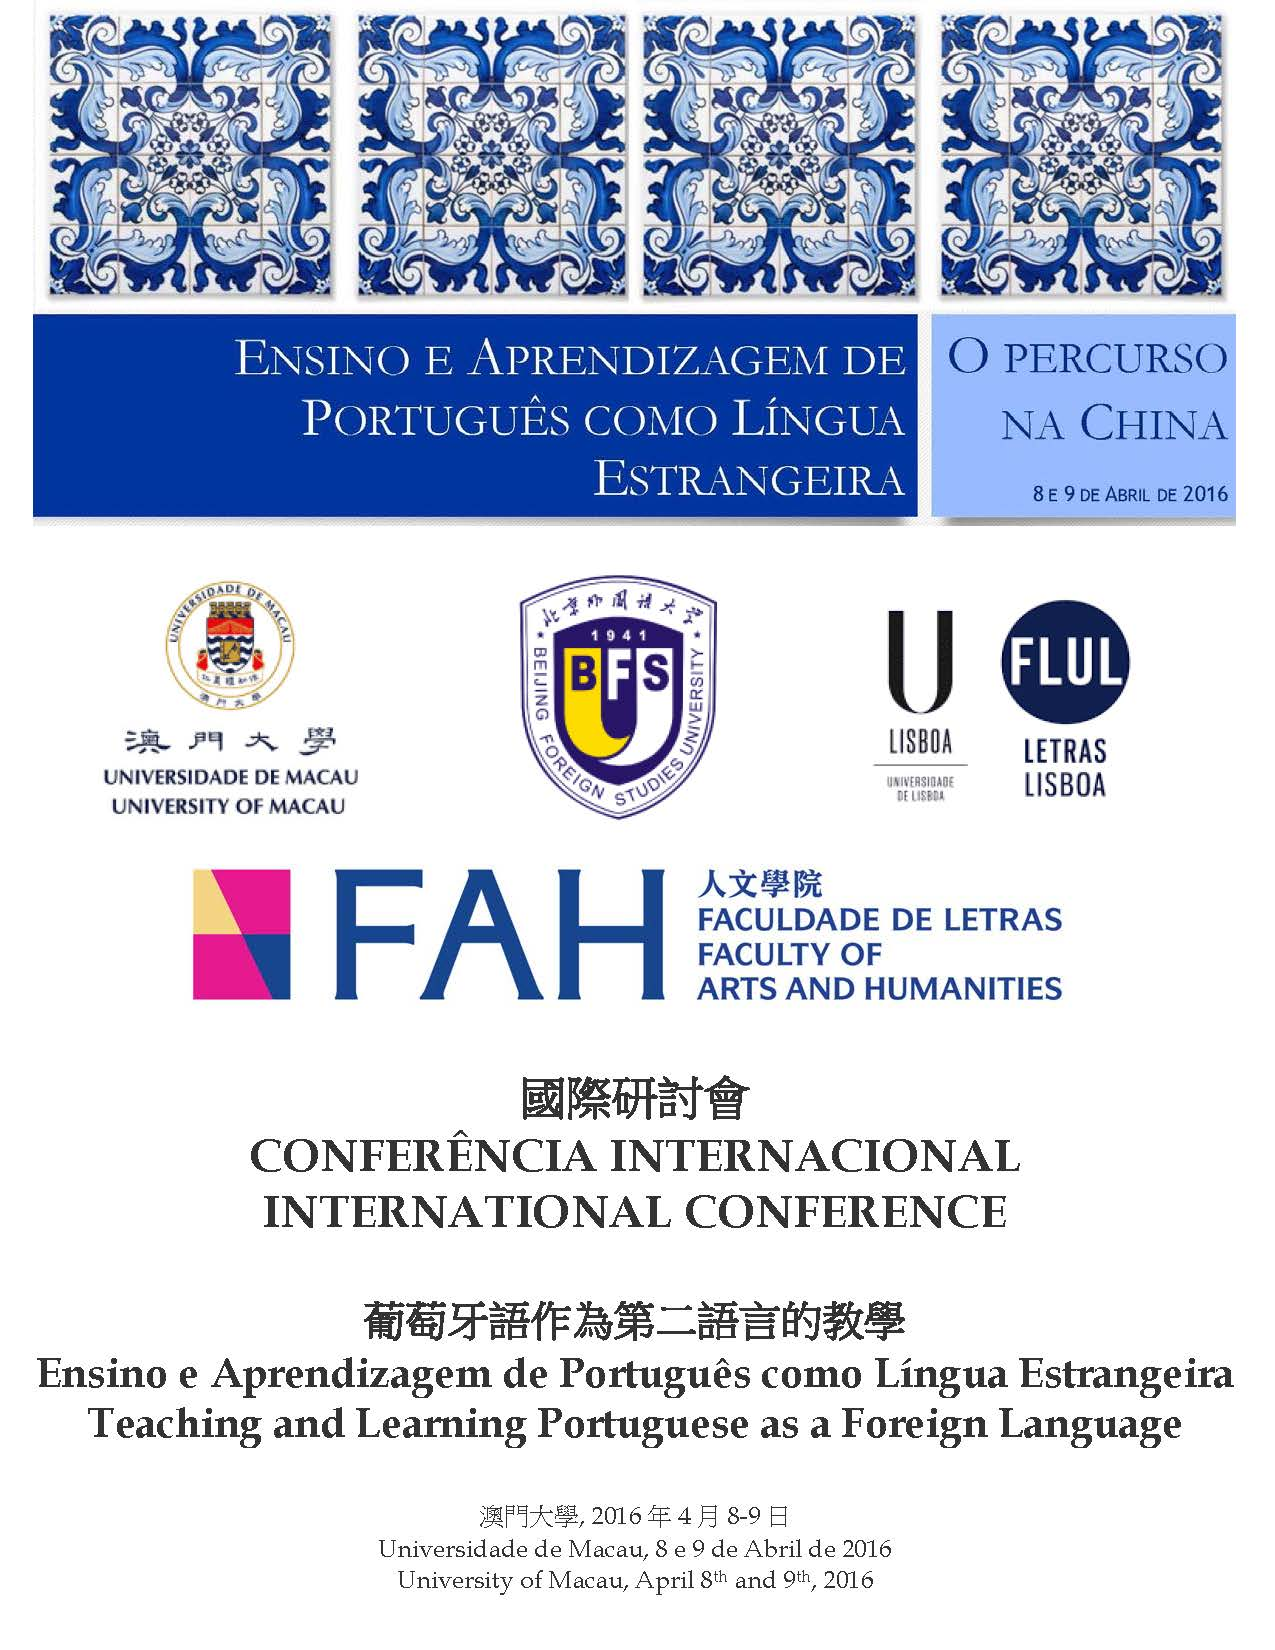 The International Conference on Teaching and Learning Portuguese as a Second Language will be held at UM on 8 April and 9 April